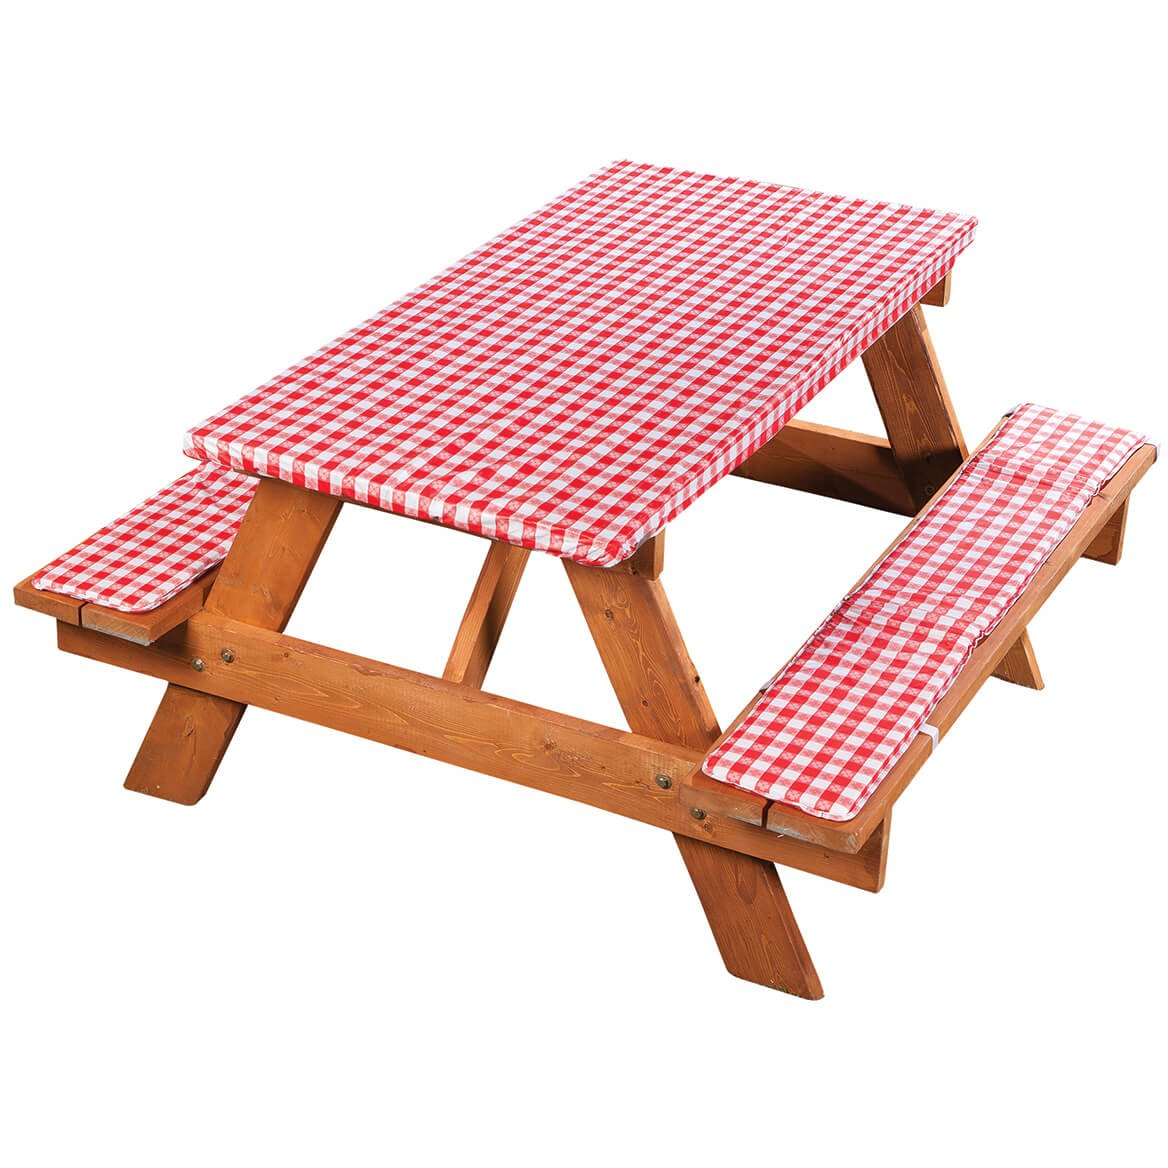 Amazon.com  Fox Valley Traders Deluxe Picnic Table Cover with Cushions  Garden \u0026 Outdoor  sc 1 st  Amazon.com & Amazon.com : Fox Valley Traders Deluxe Picnic Table Cover with ...